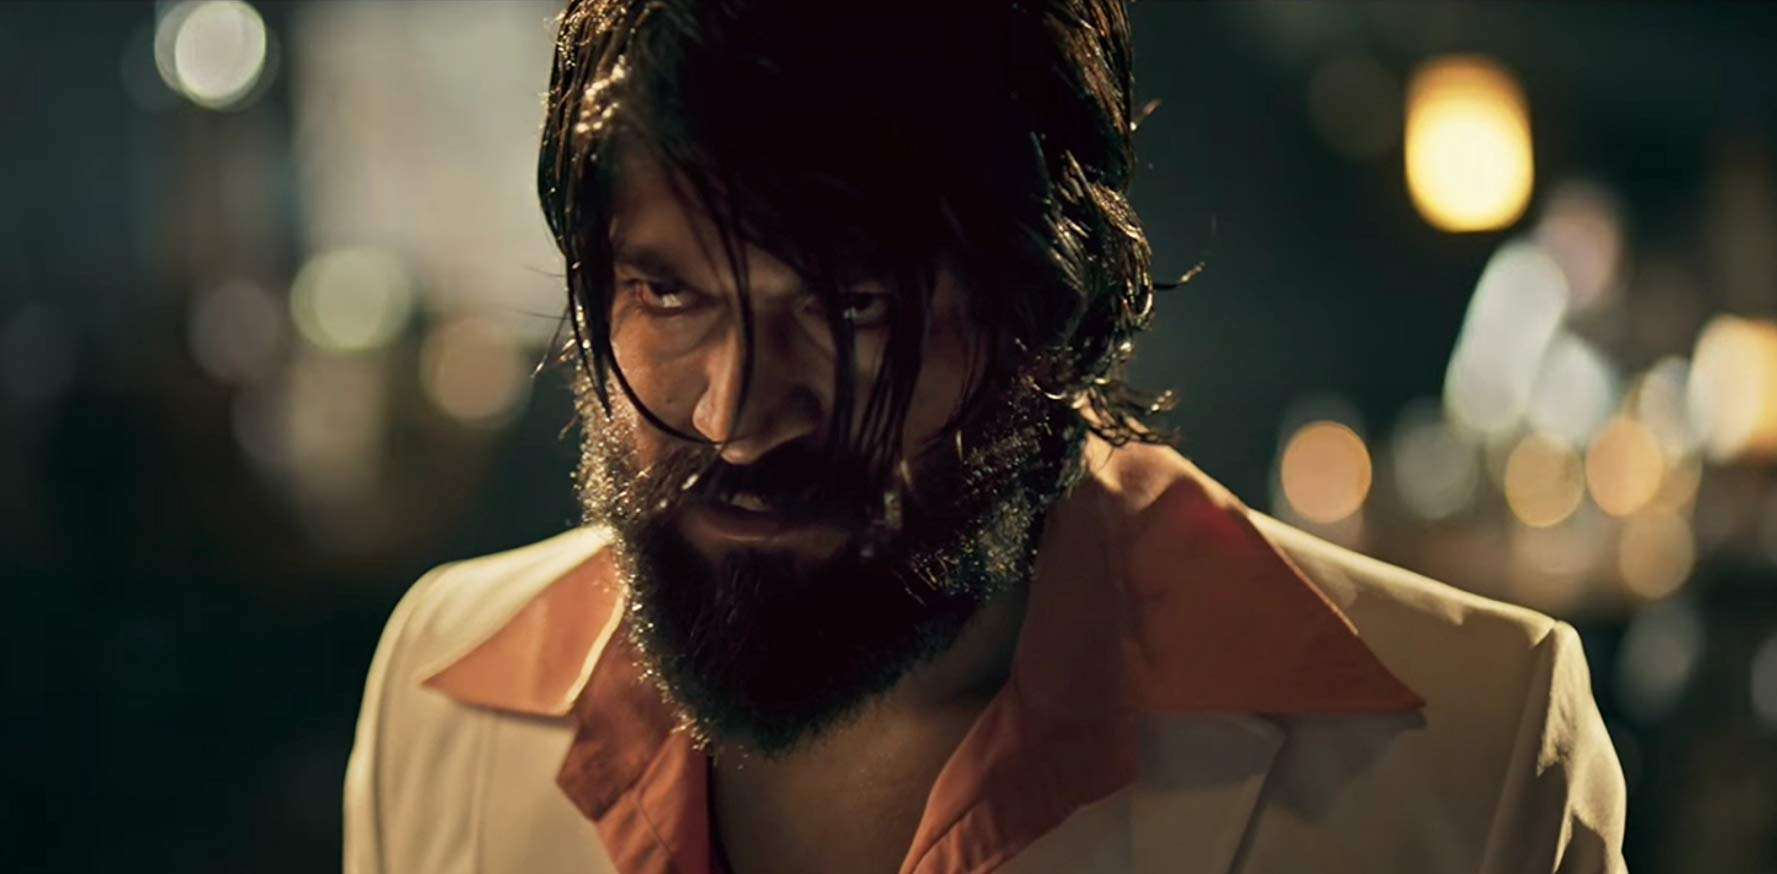 free download full movie kgf chapter 1 in hindi